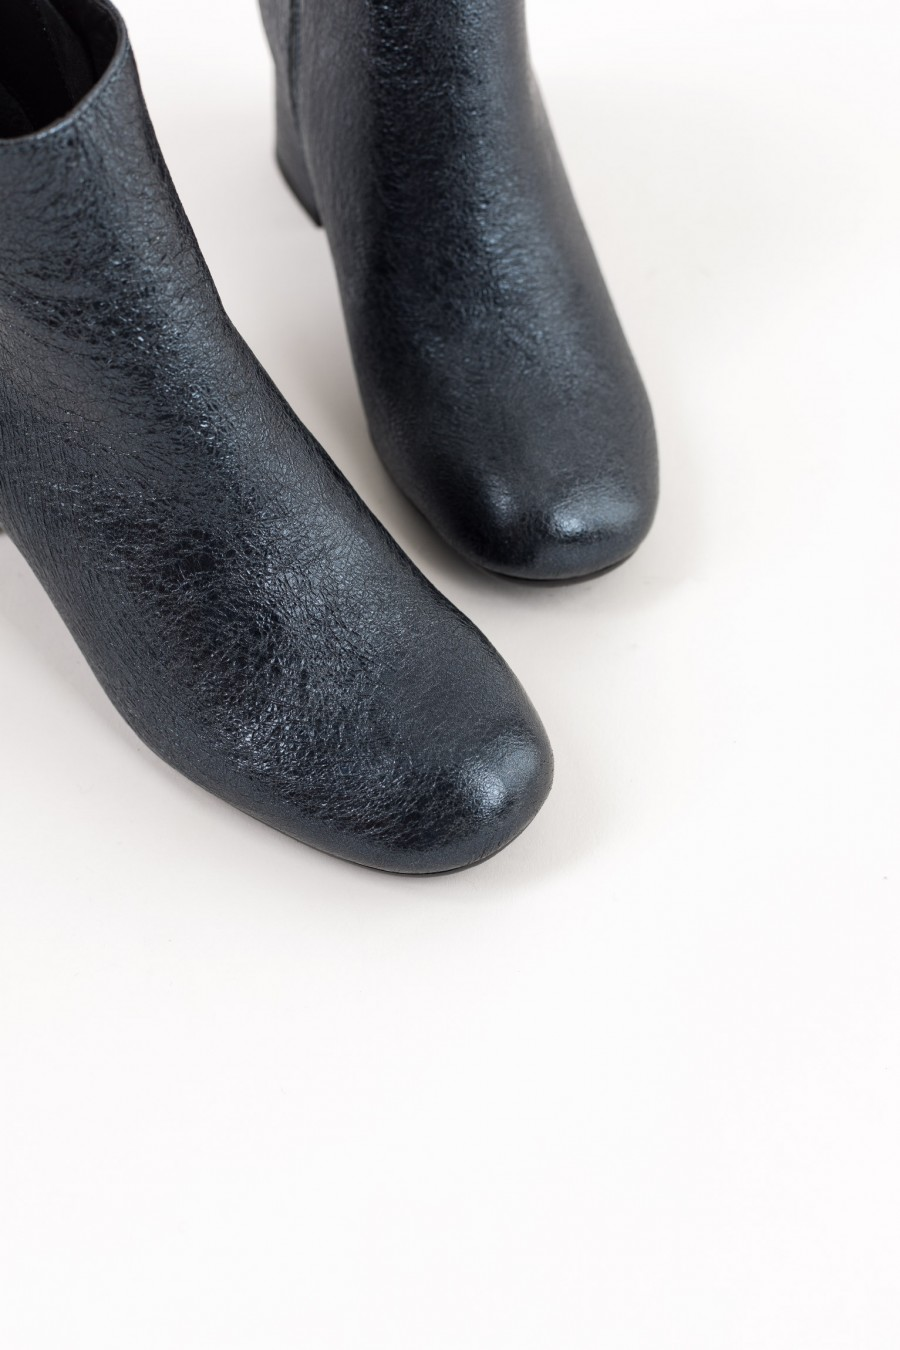 Rounded toe blue metallic boots